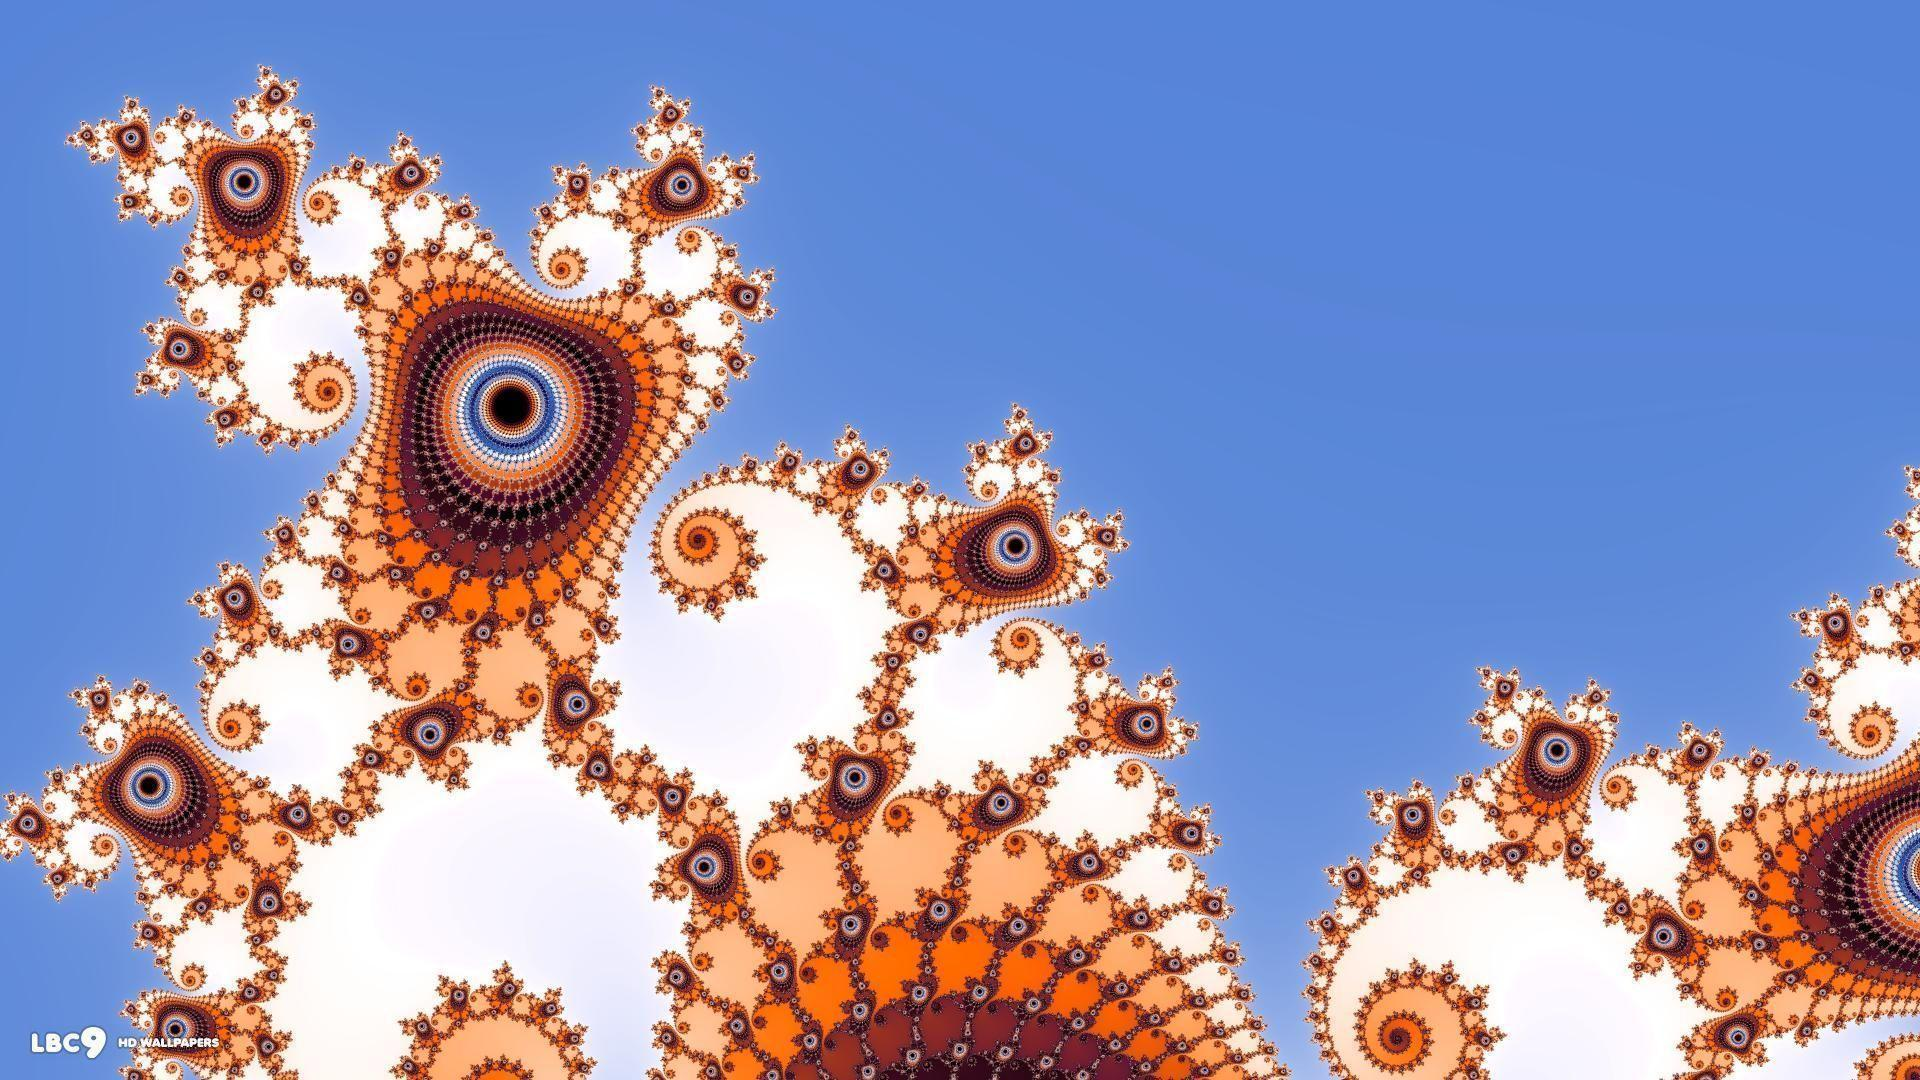 mandelbrot set wallpapers 23/28